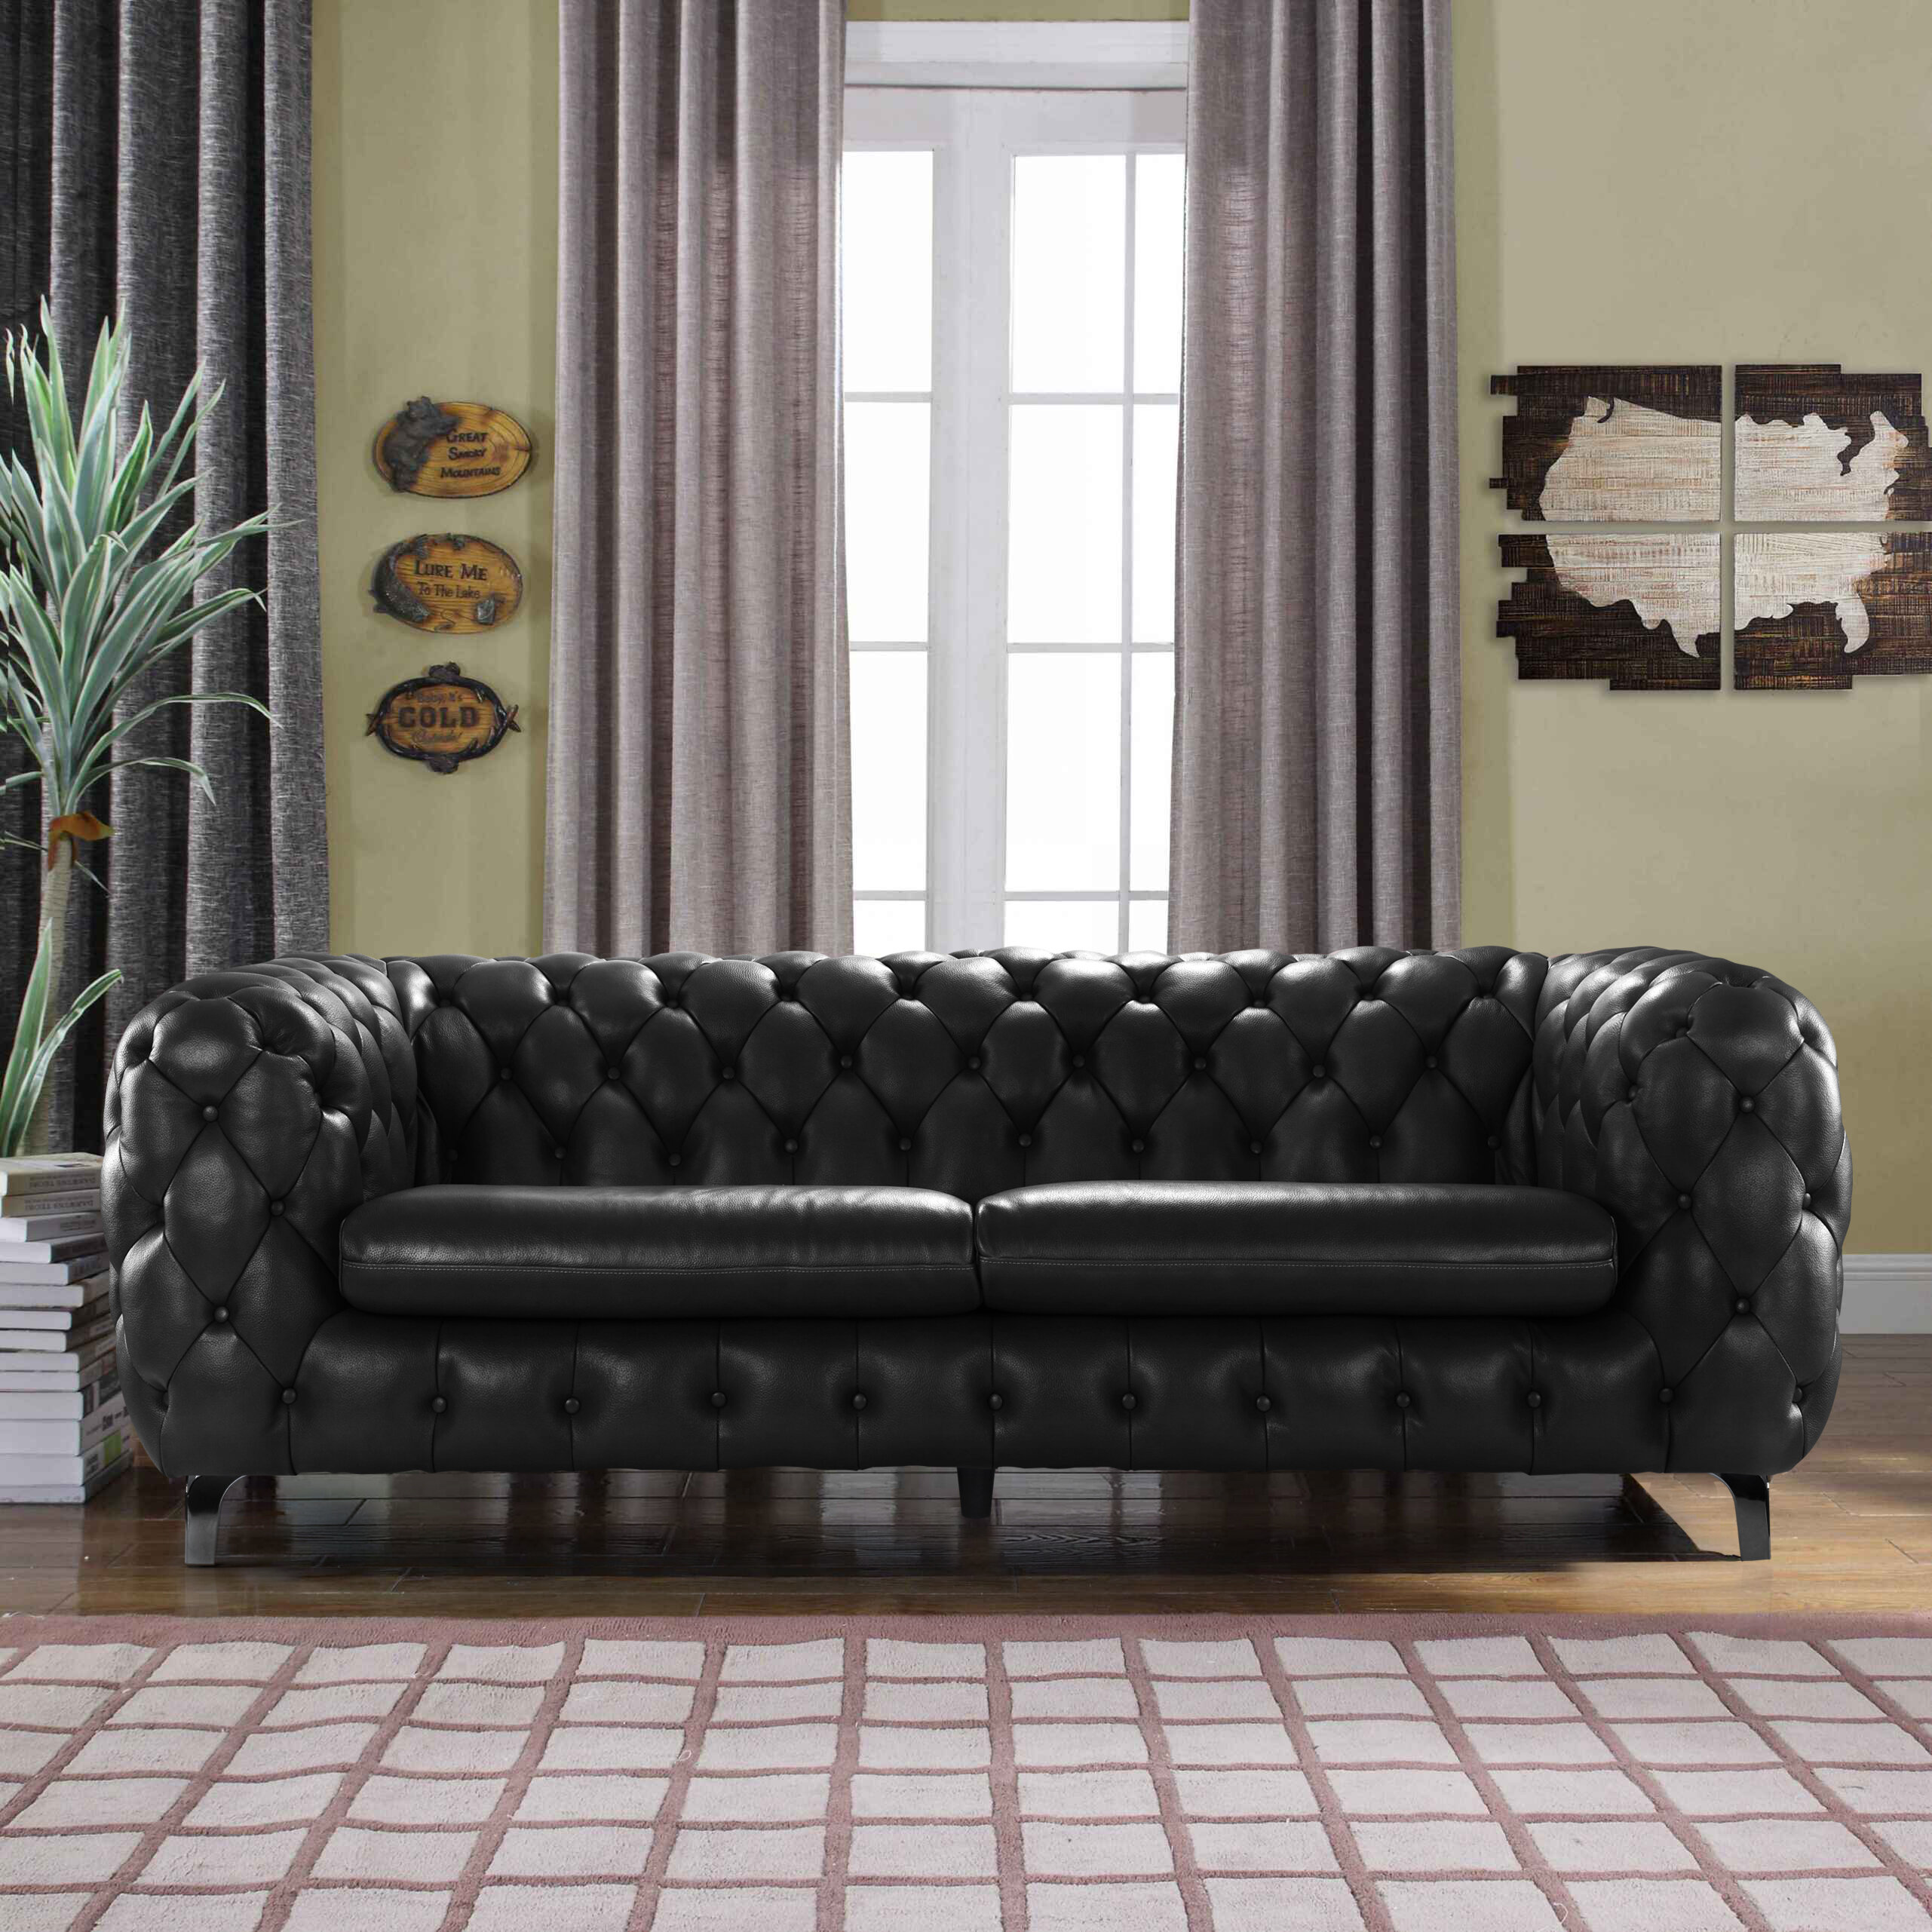 17 Stories Yuliya Leather Chesterfield Sofa with Built In Shelves